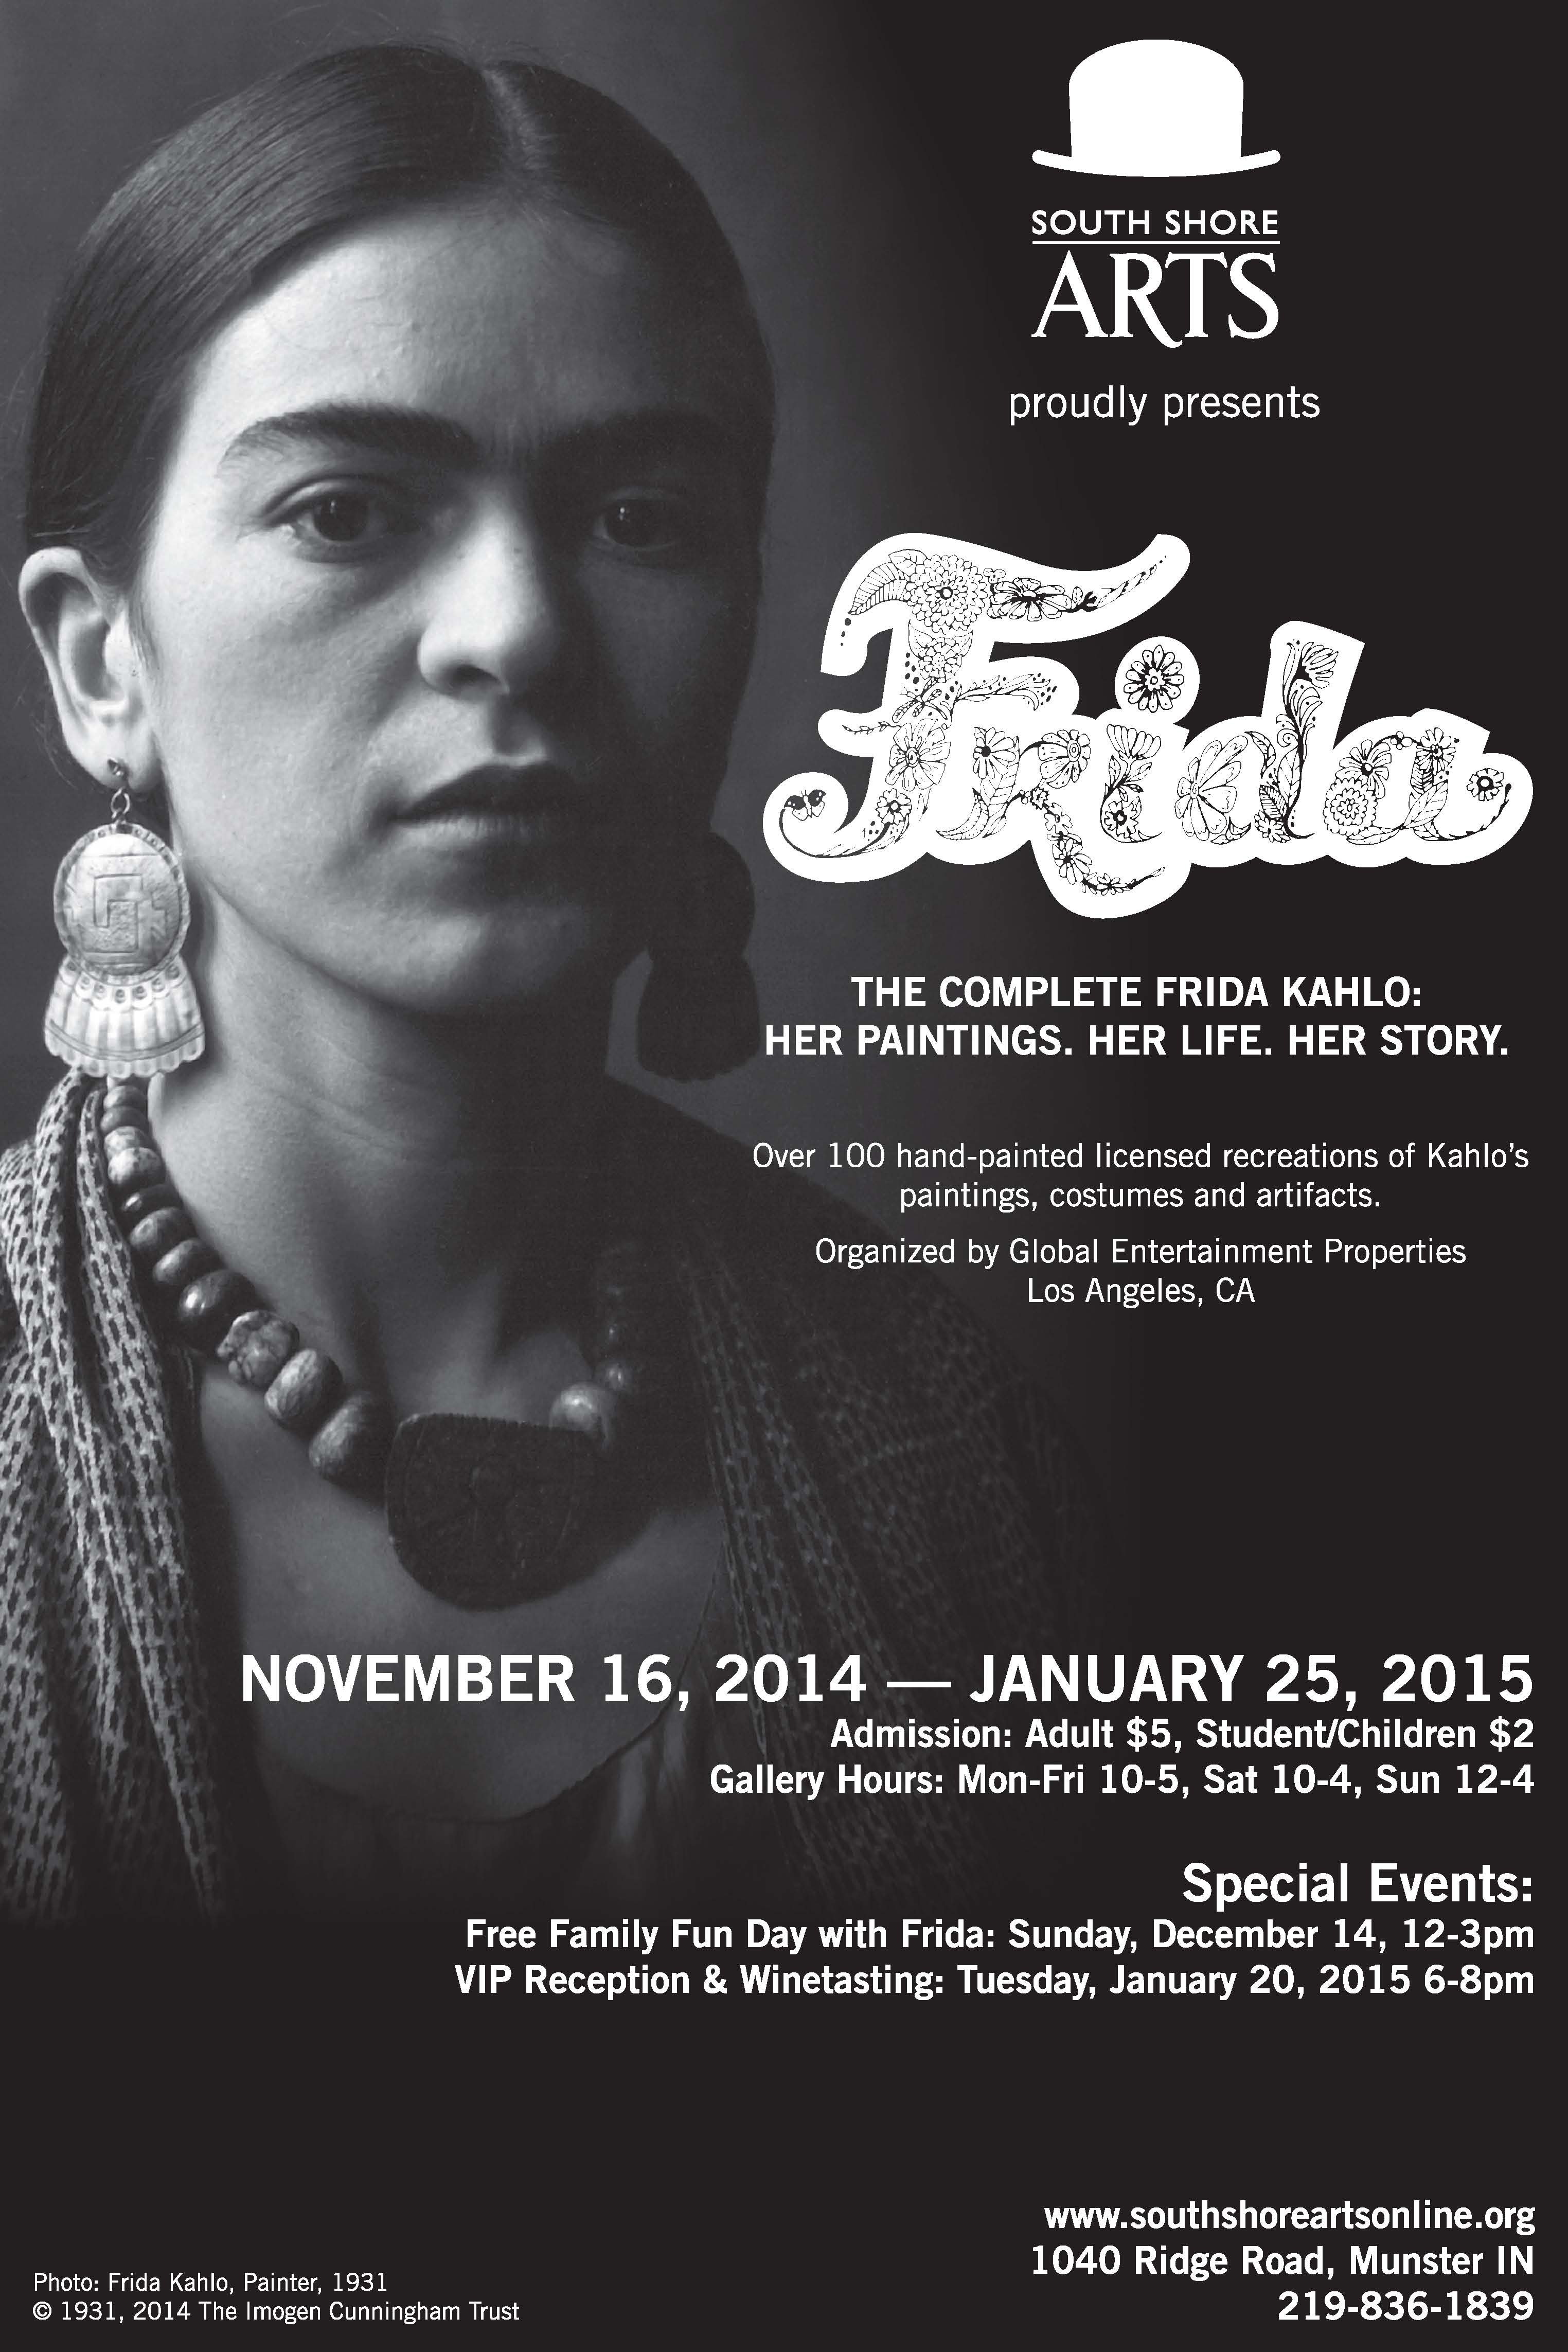 The Complete Frida Kahlo: Her Paintings. Her Life. Her Story